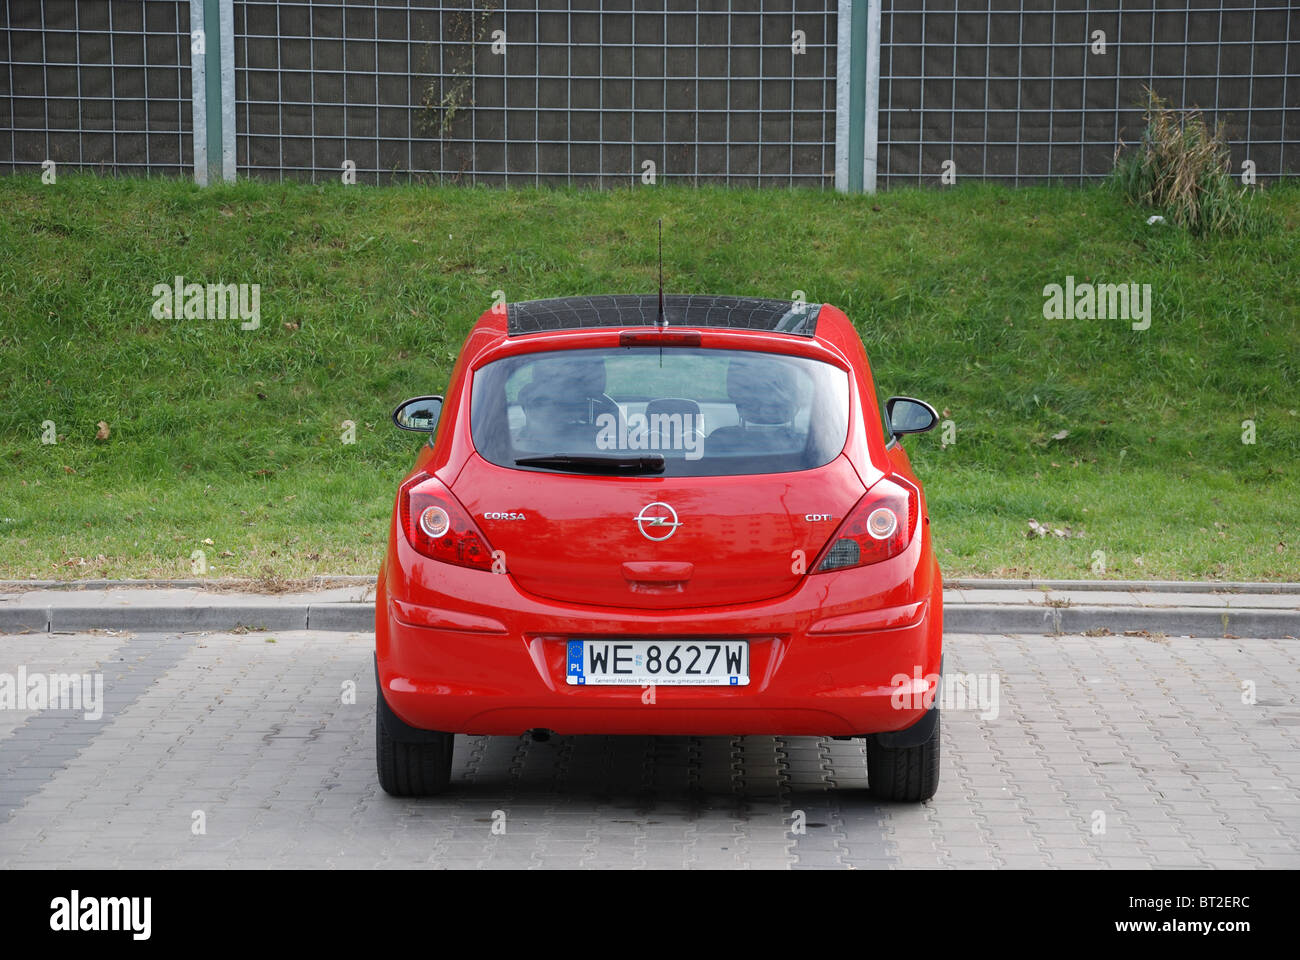 Car Opel Corsa 1 3 Cdti Stock Photos Amp Car Opel Corsa 1 3